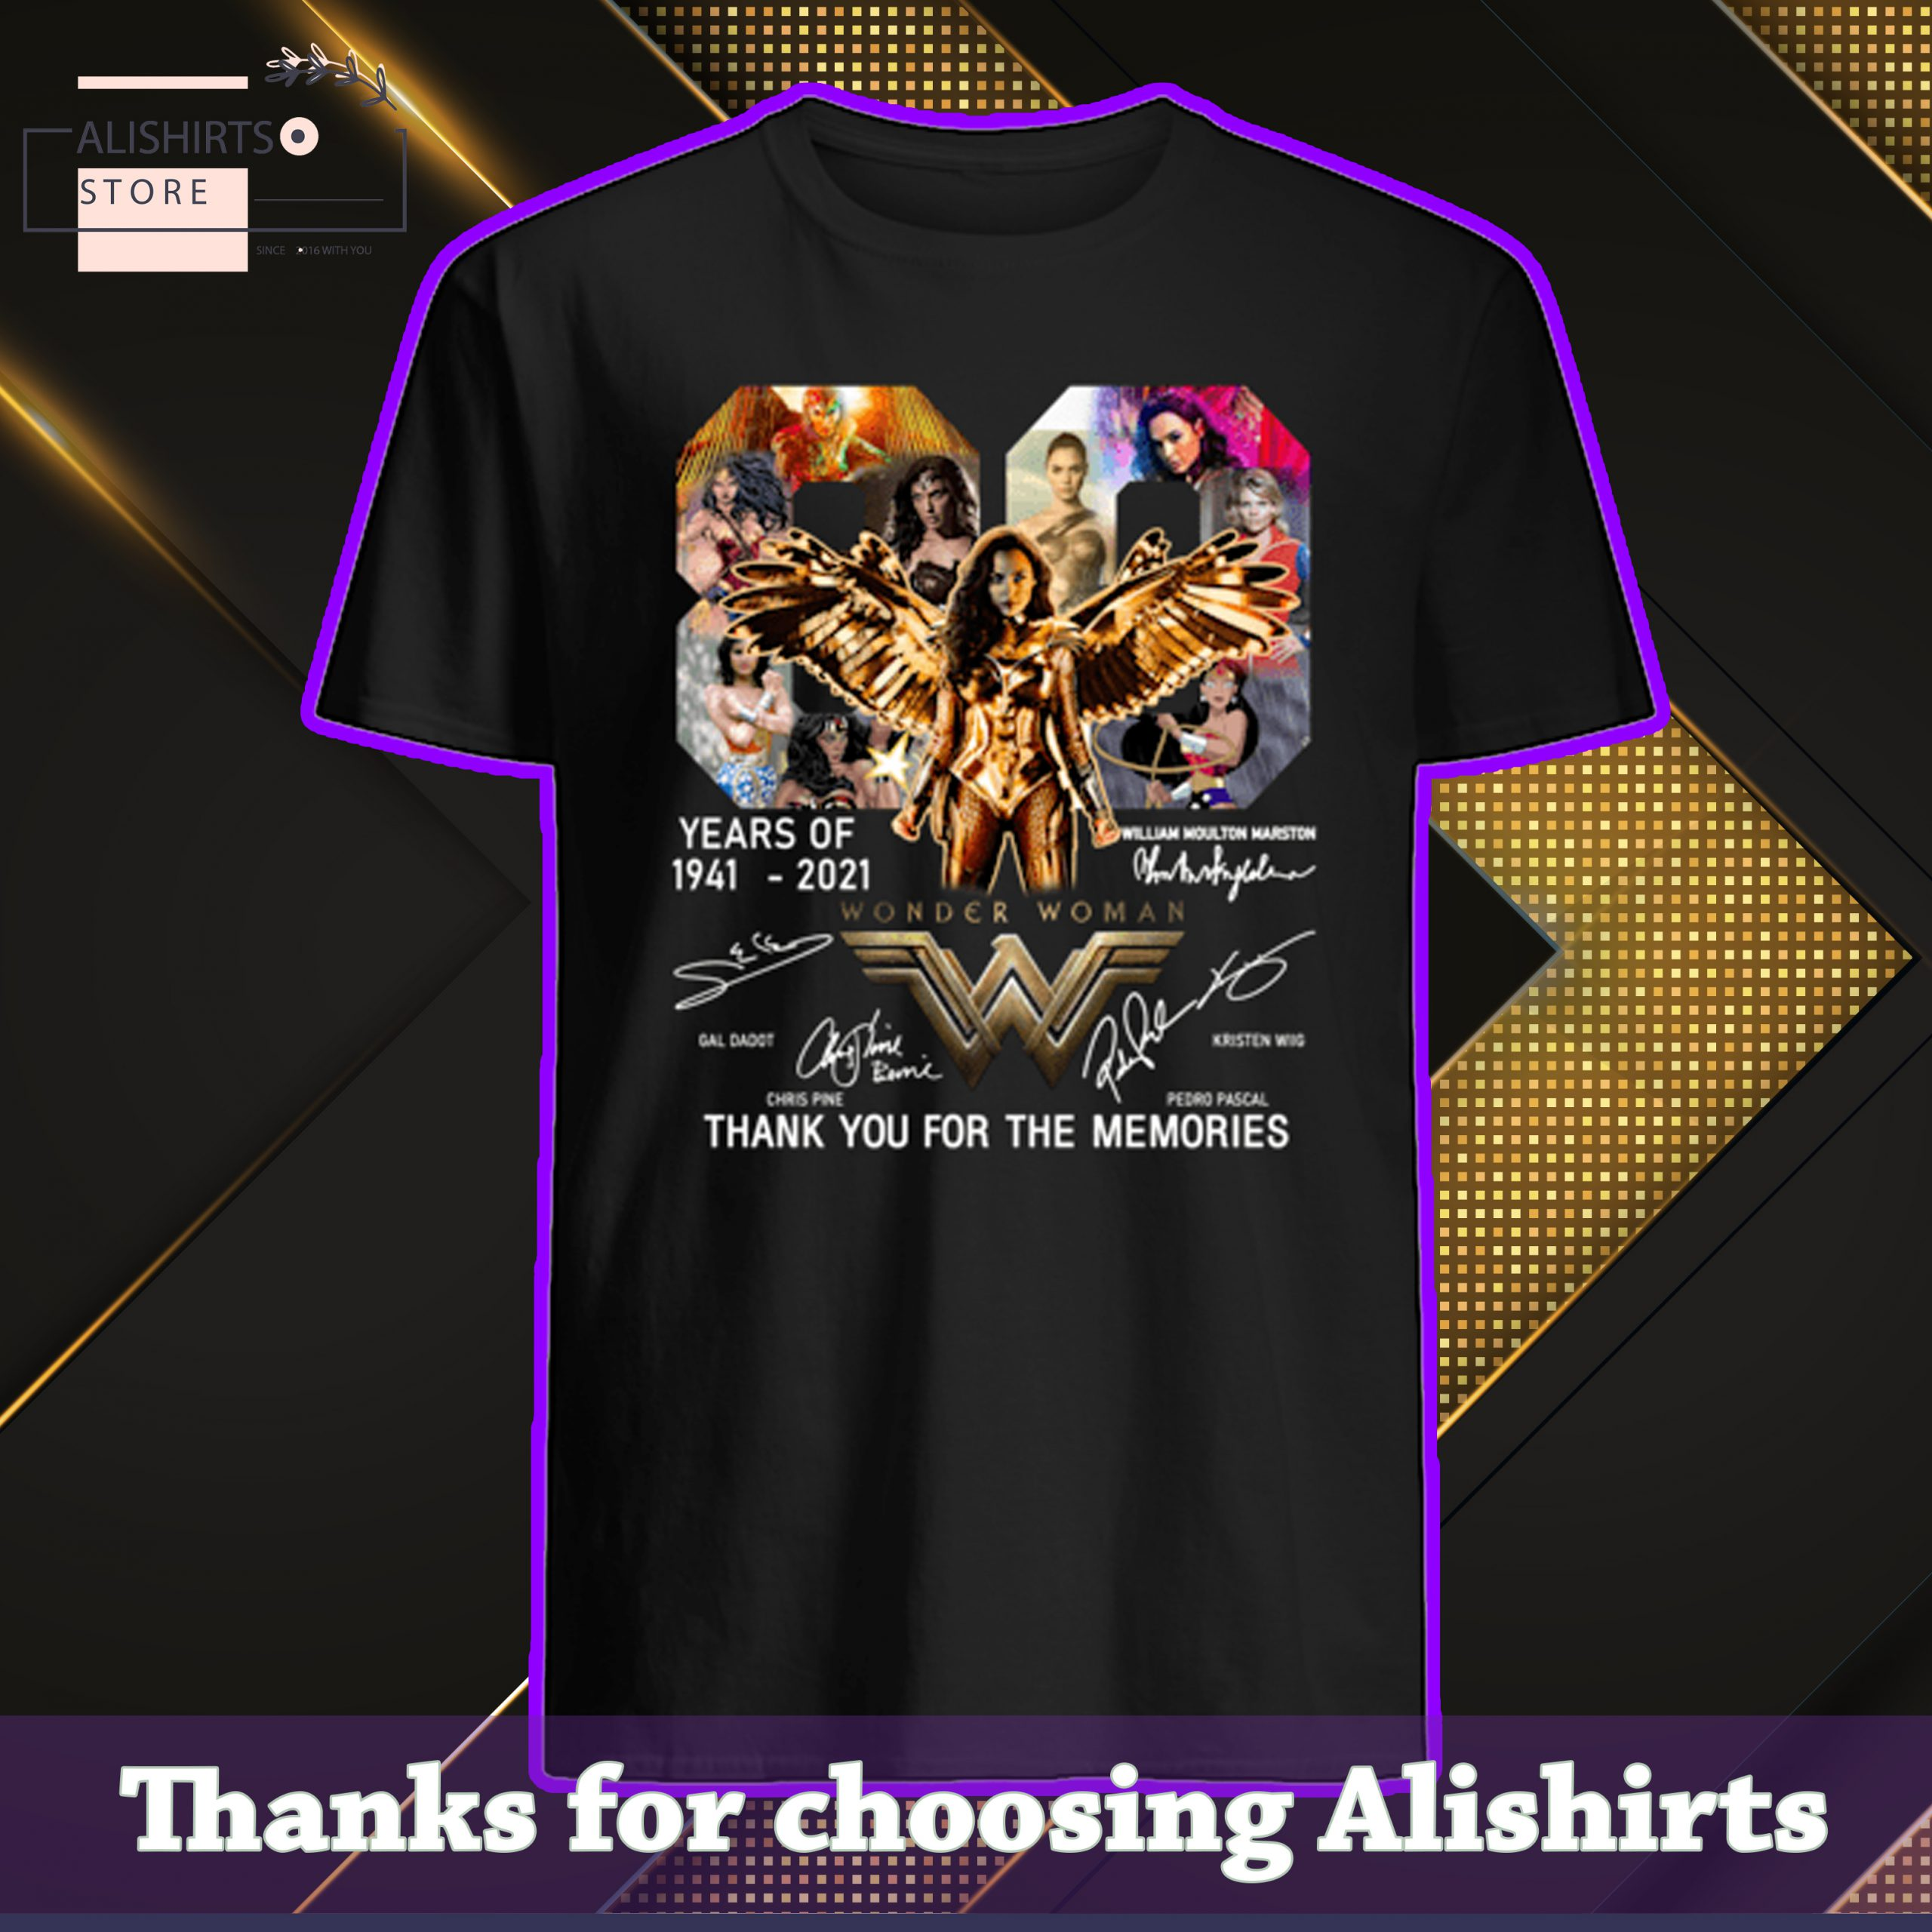 Wonder Woman 80 years of 1941-2021 thank you for the memories tshirt